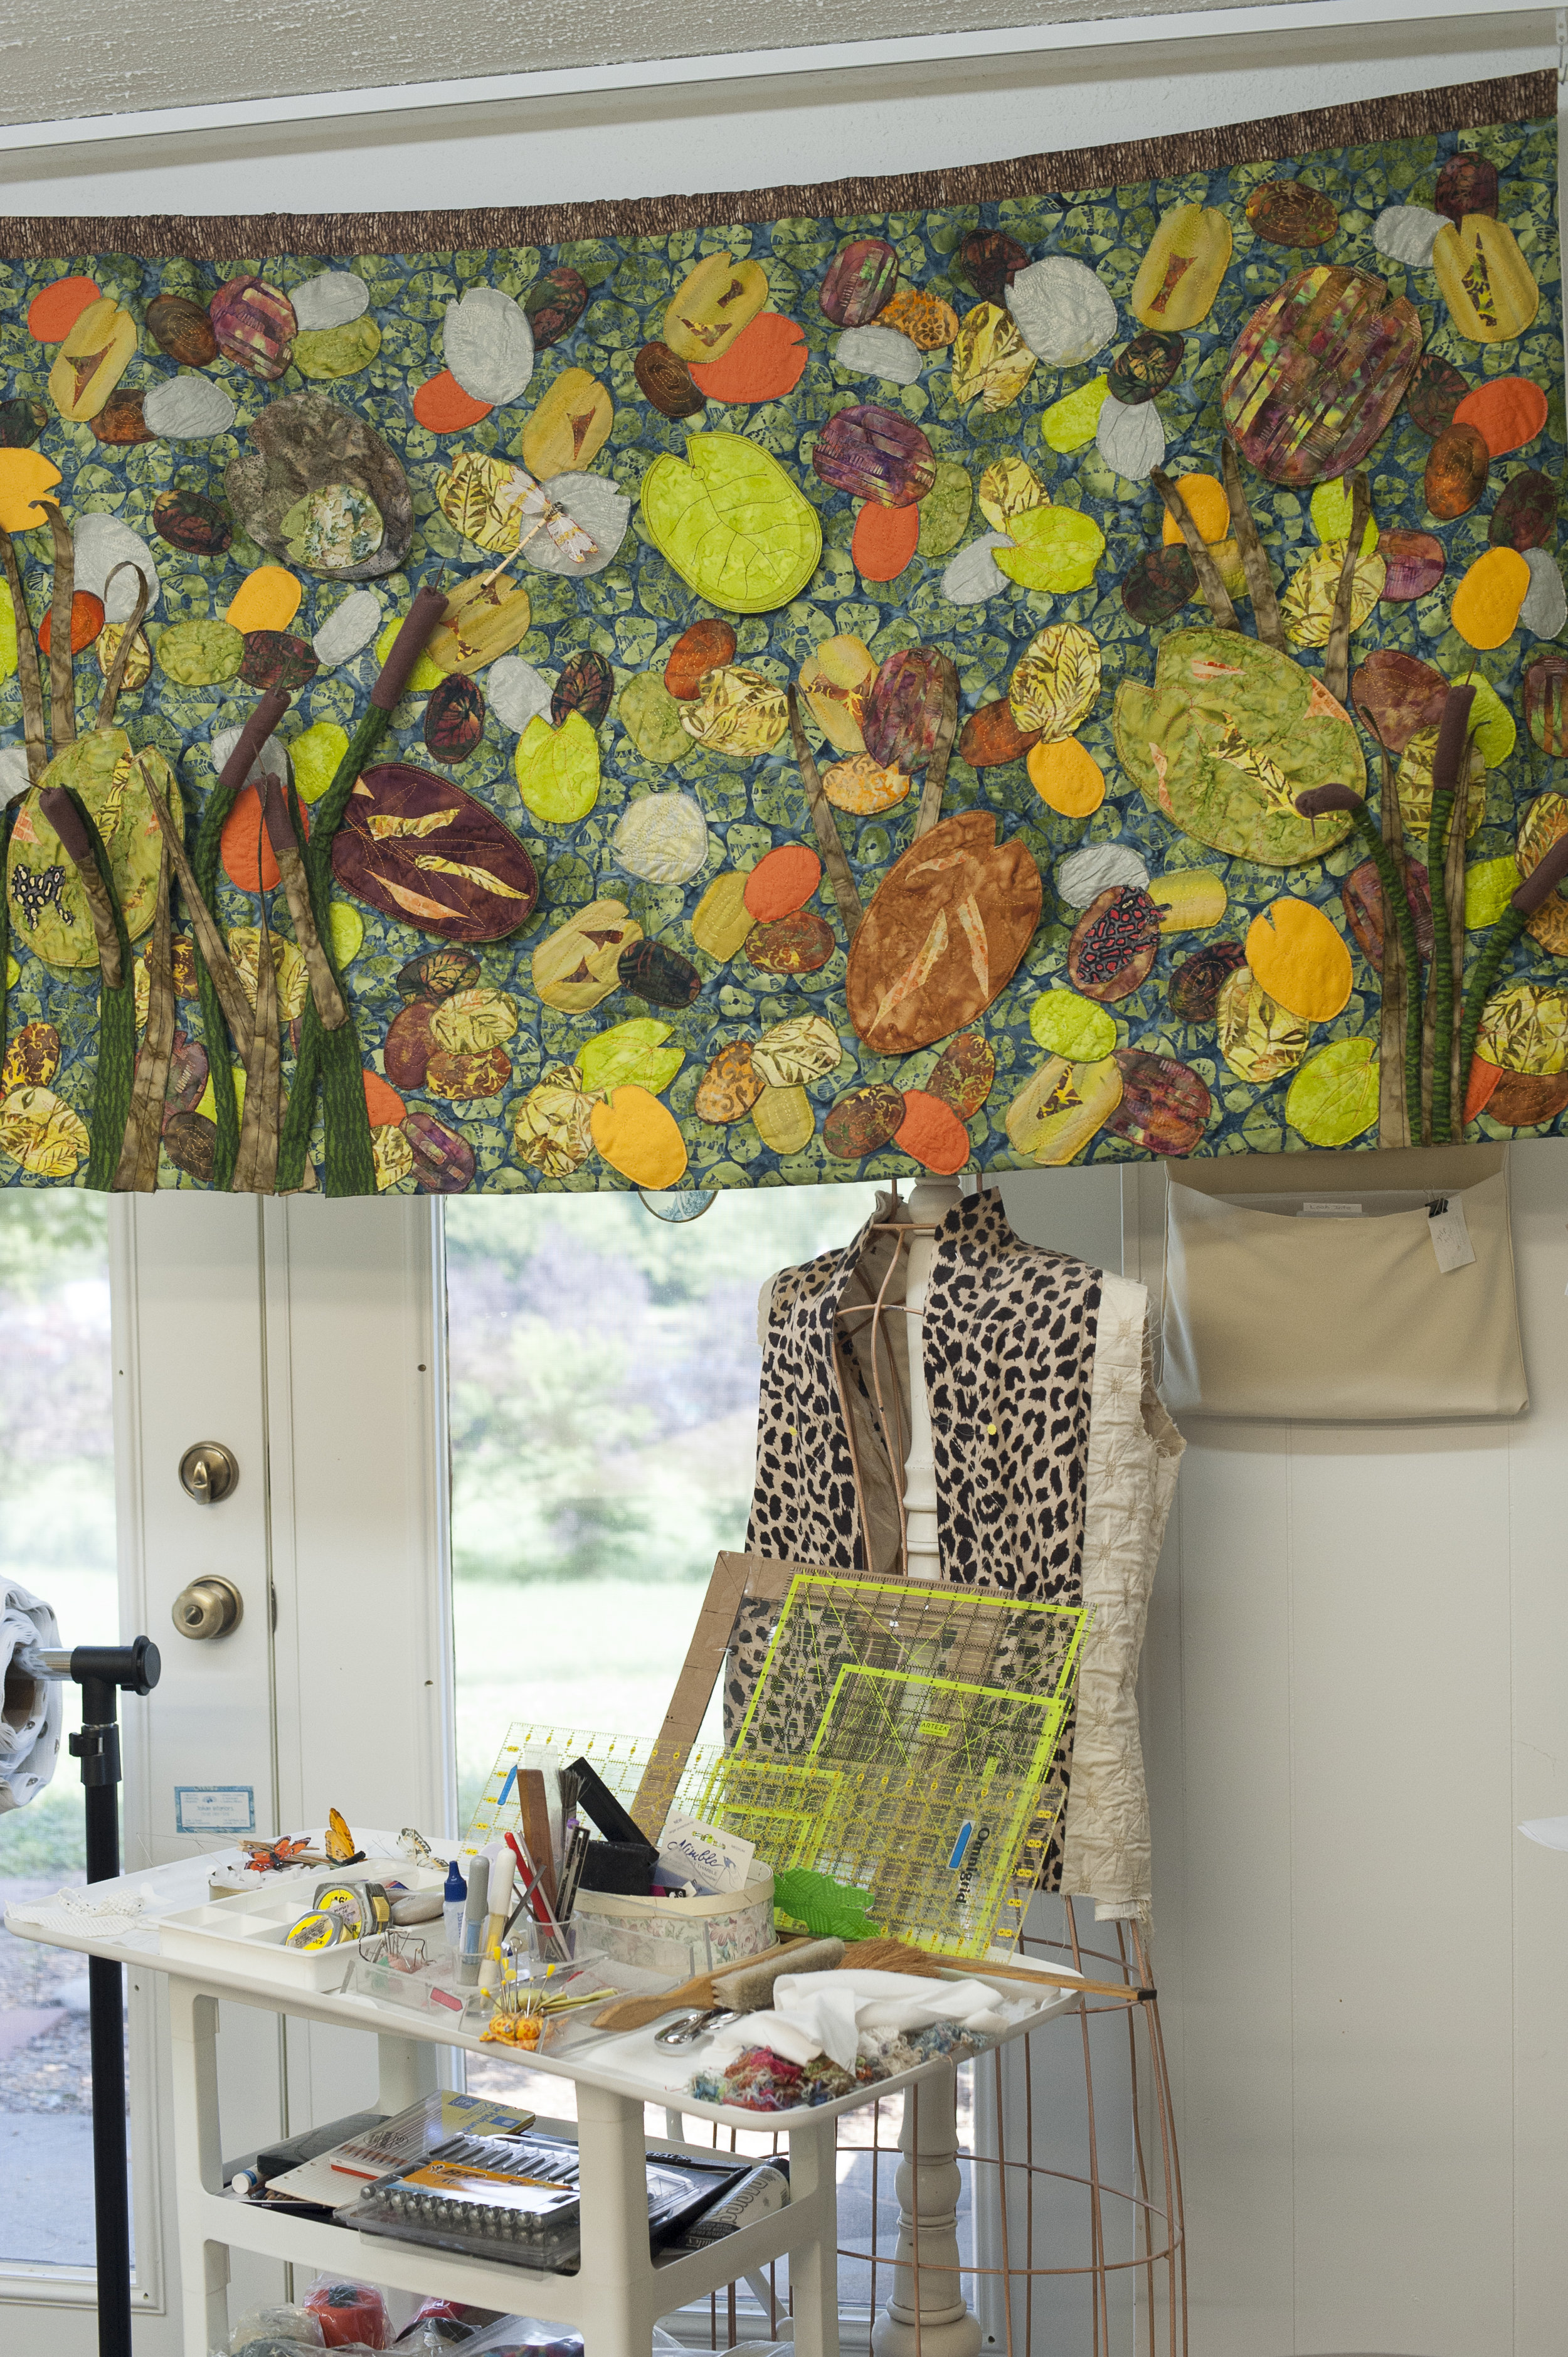 a work of lily pads hanging in Joan's studio